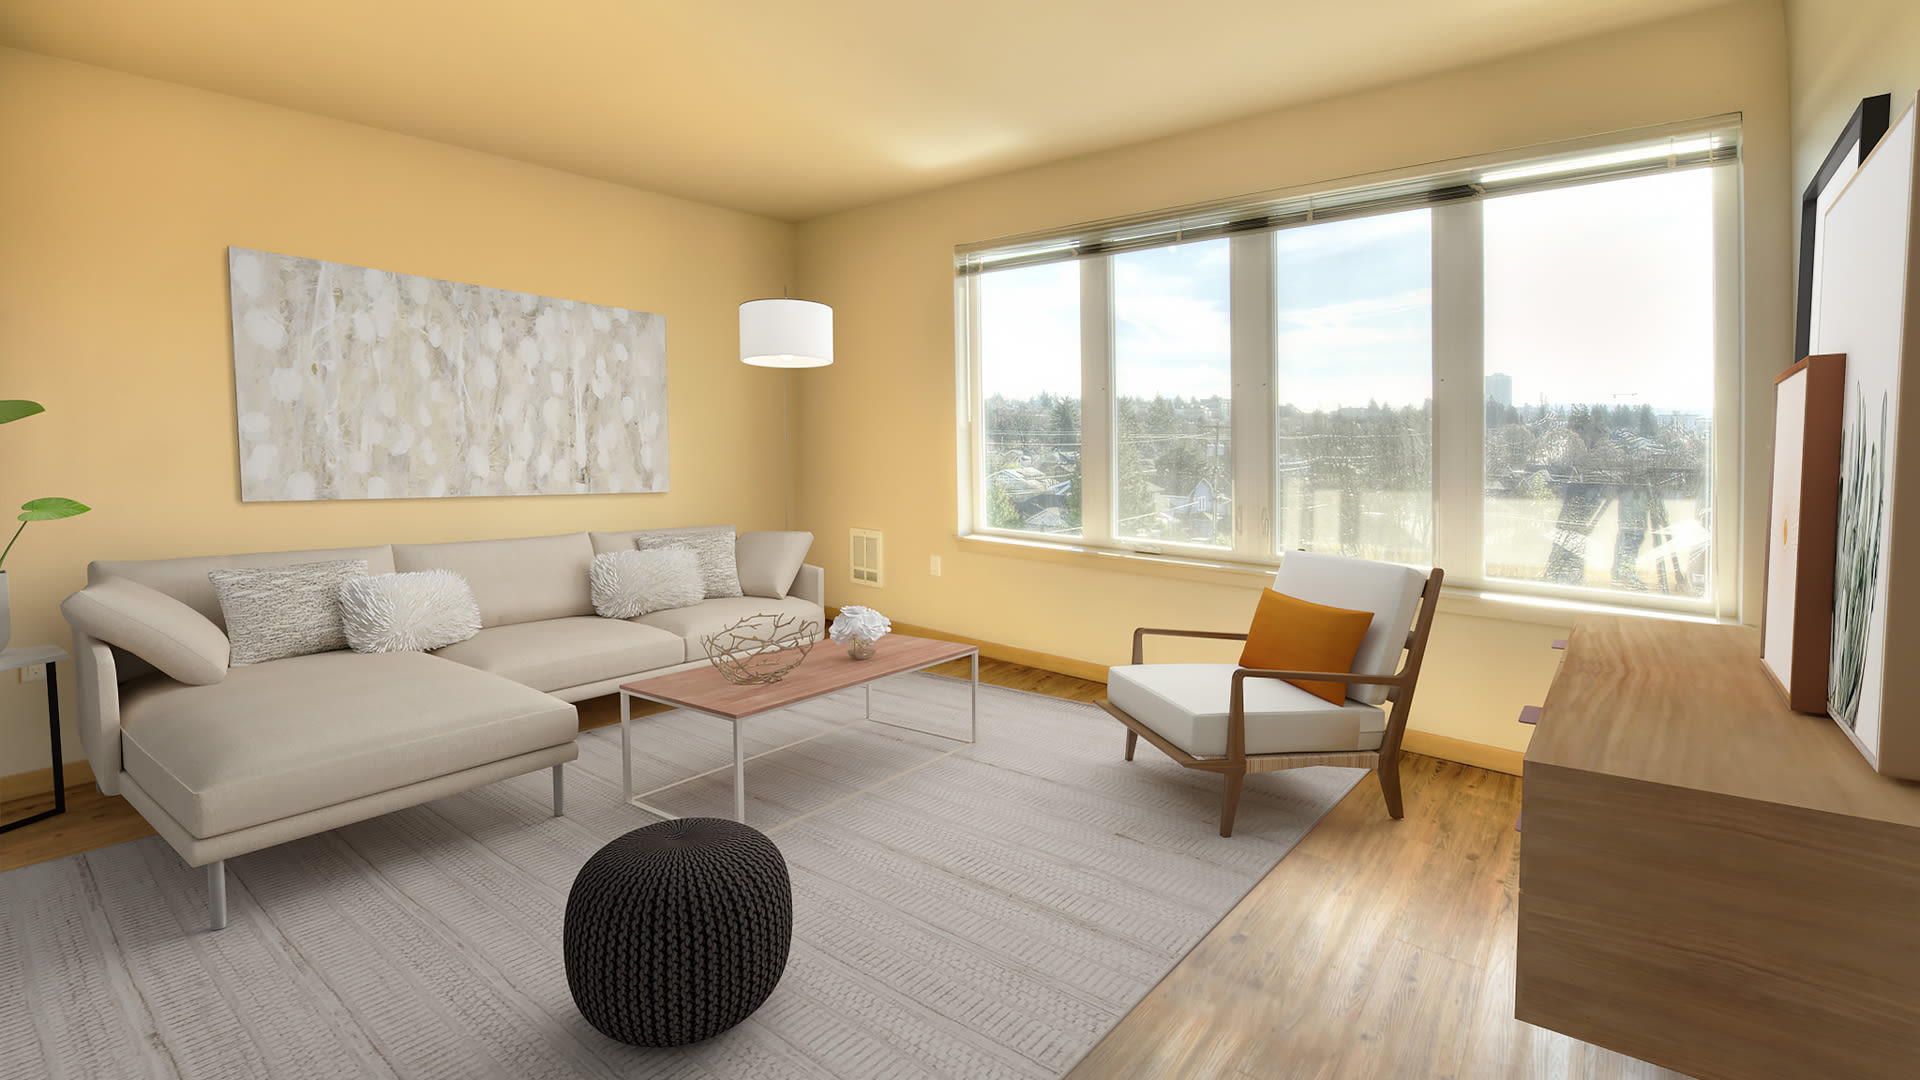 Square One Apartments - Living Room with Hard Surface Flooring